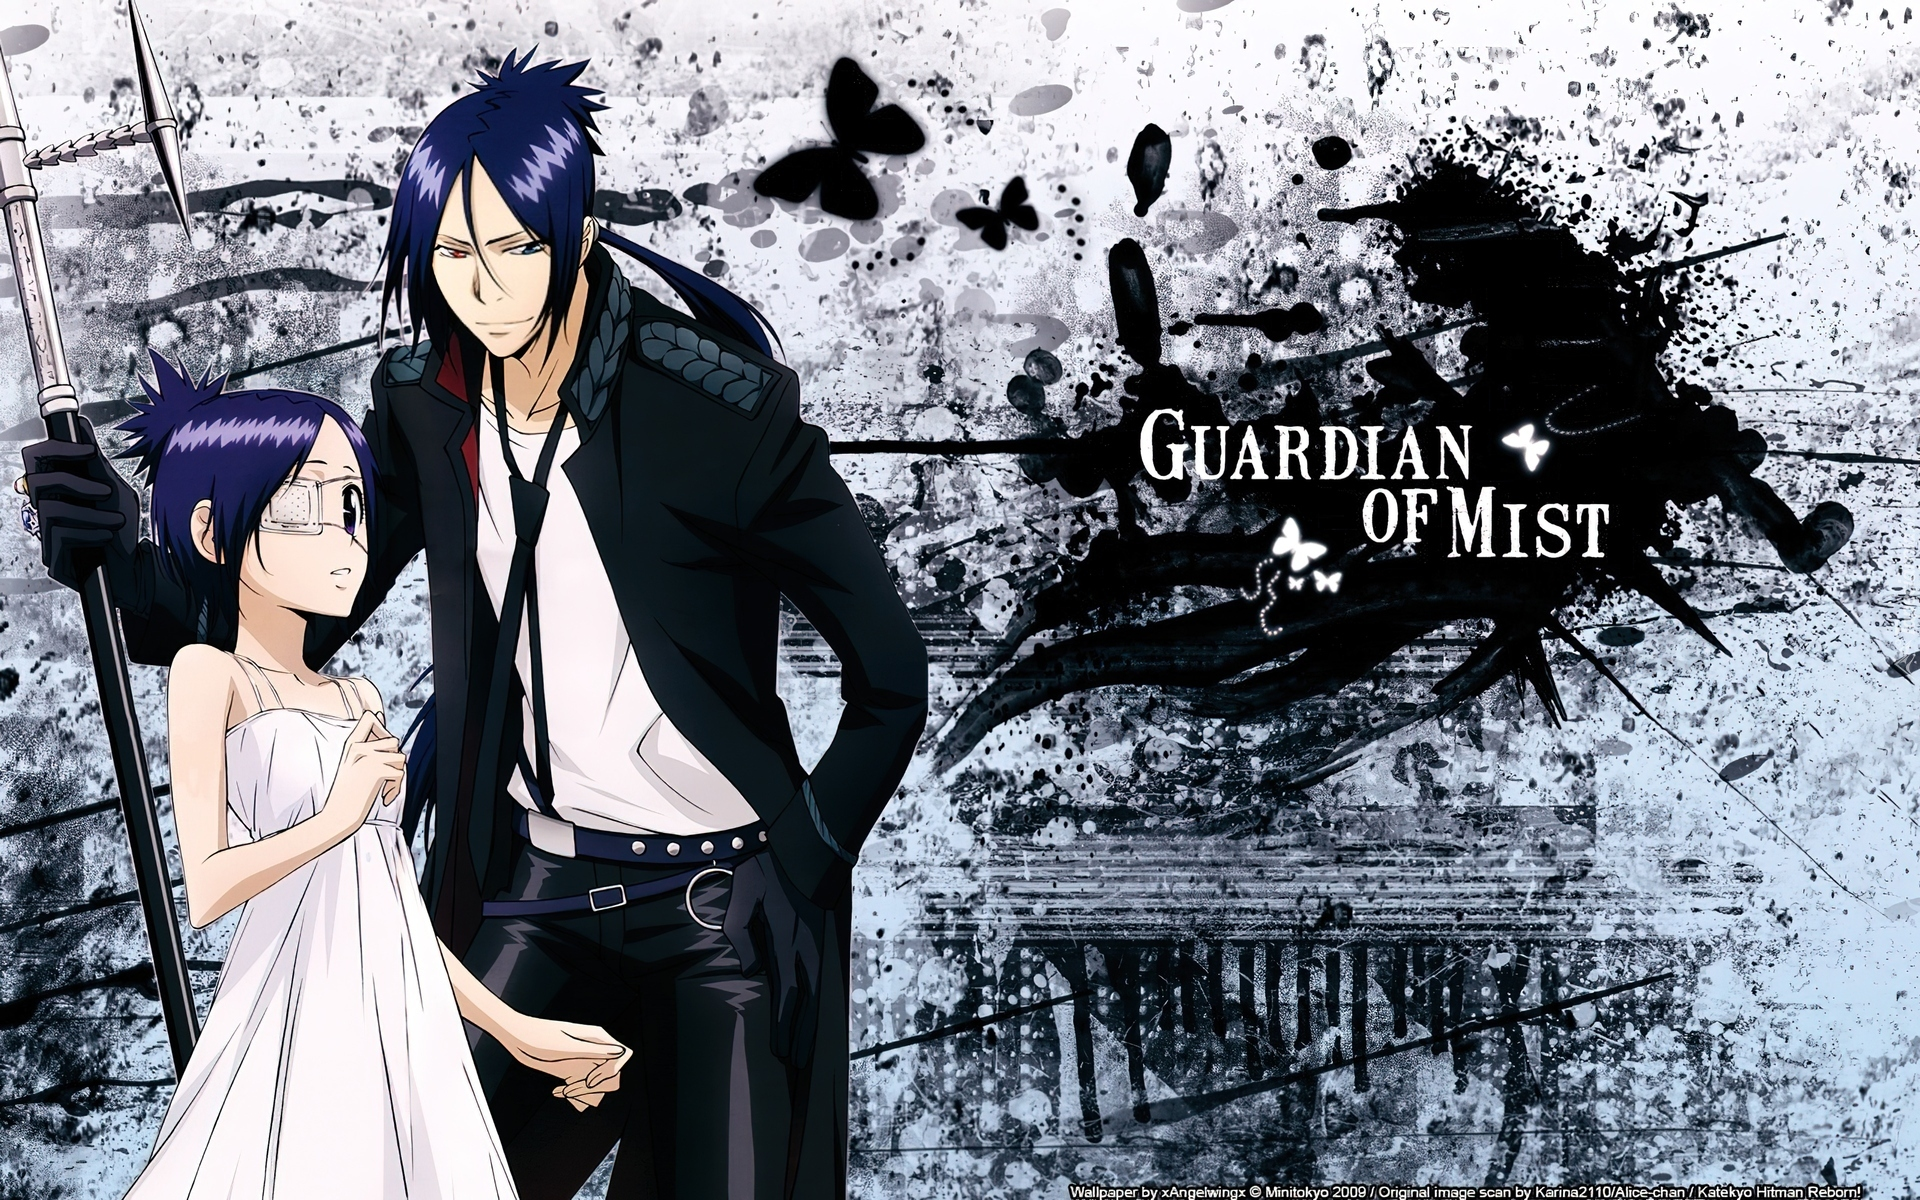 Katekyo Hitman Reborn, Guardian of Mist